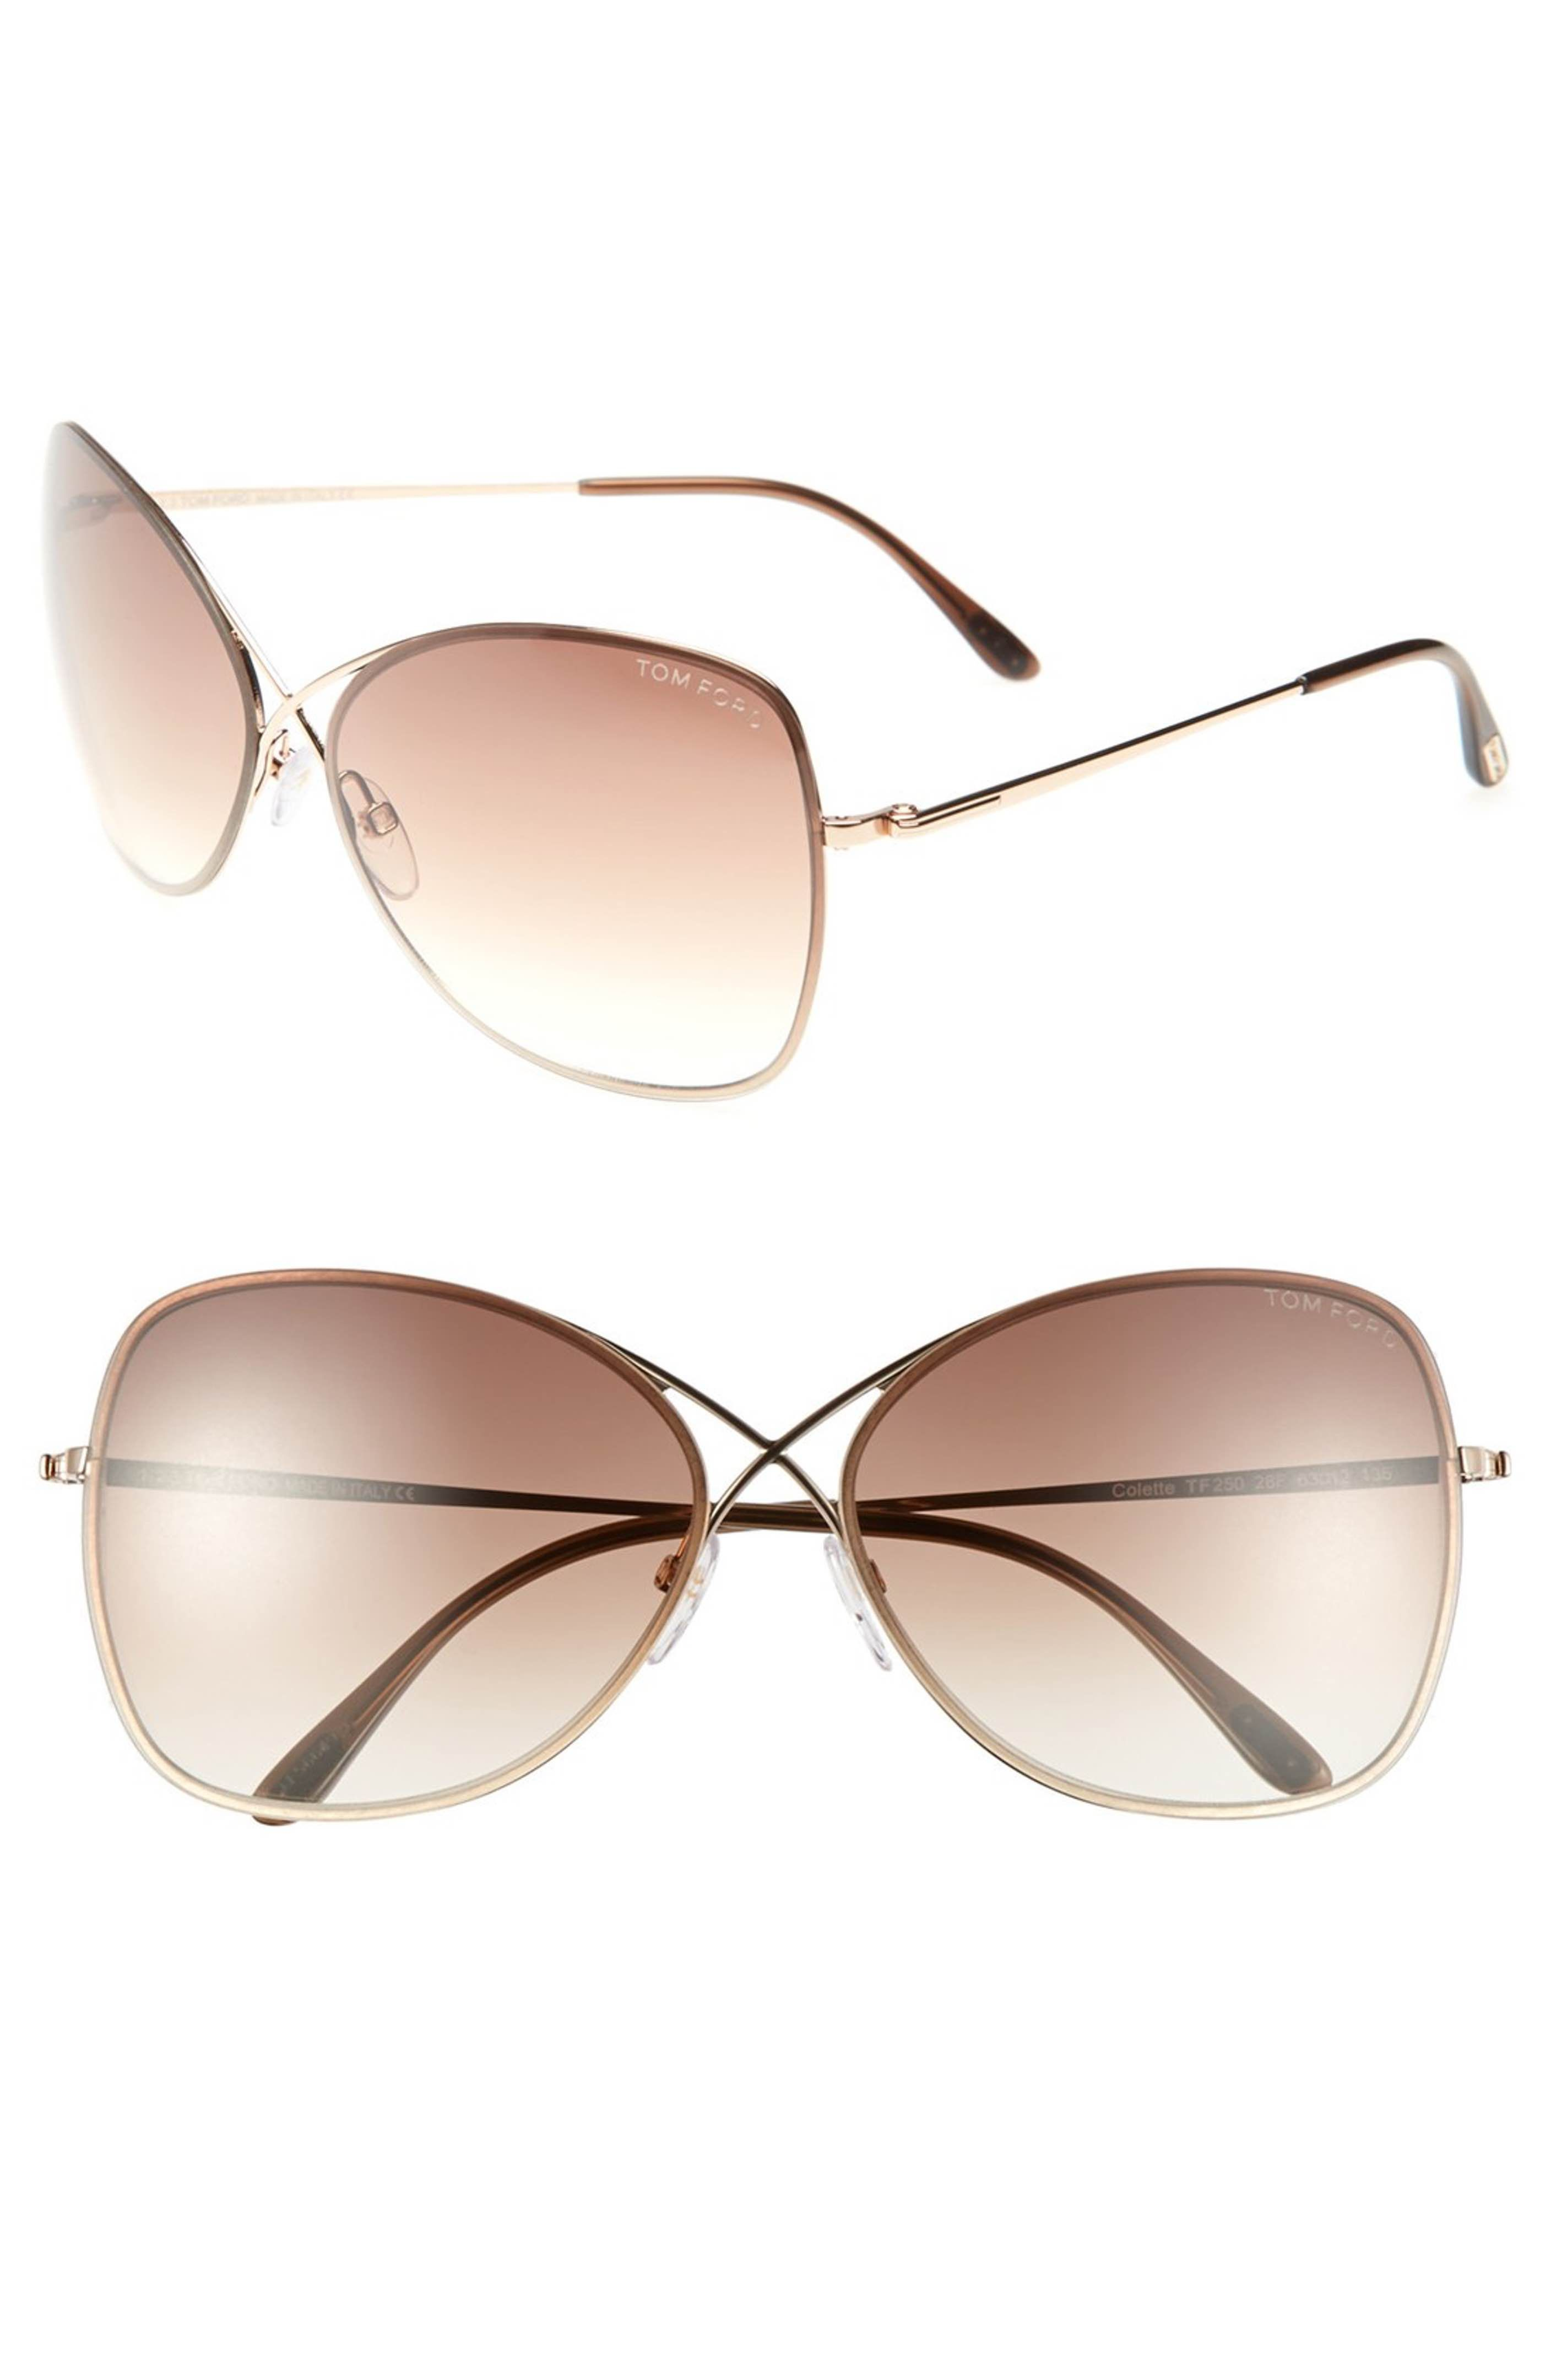 ee3da1265e86 Main Image - Tom Ford  Colette  63mm Oversized Sunglasses... shiny brown  gradient